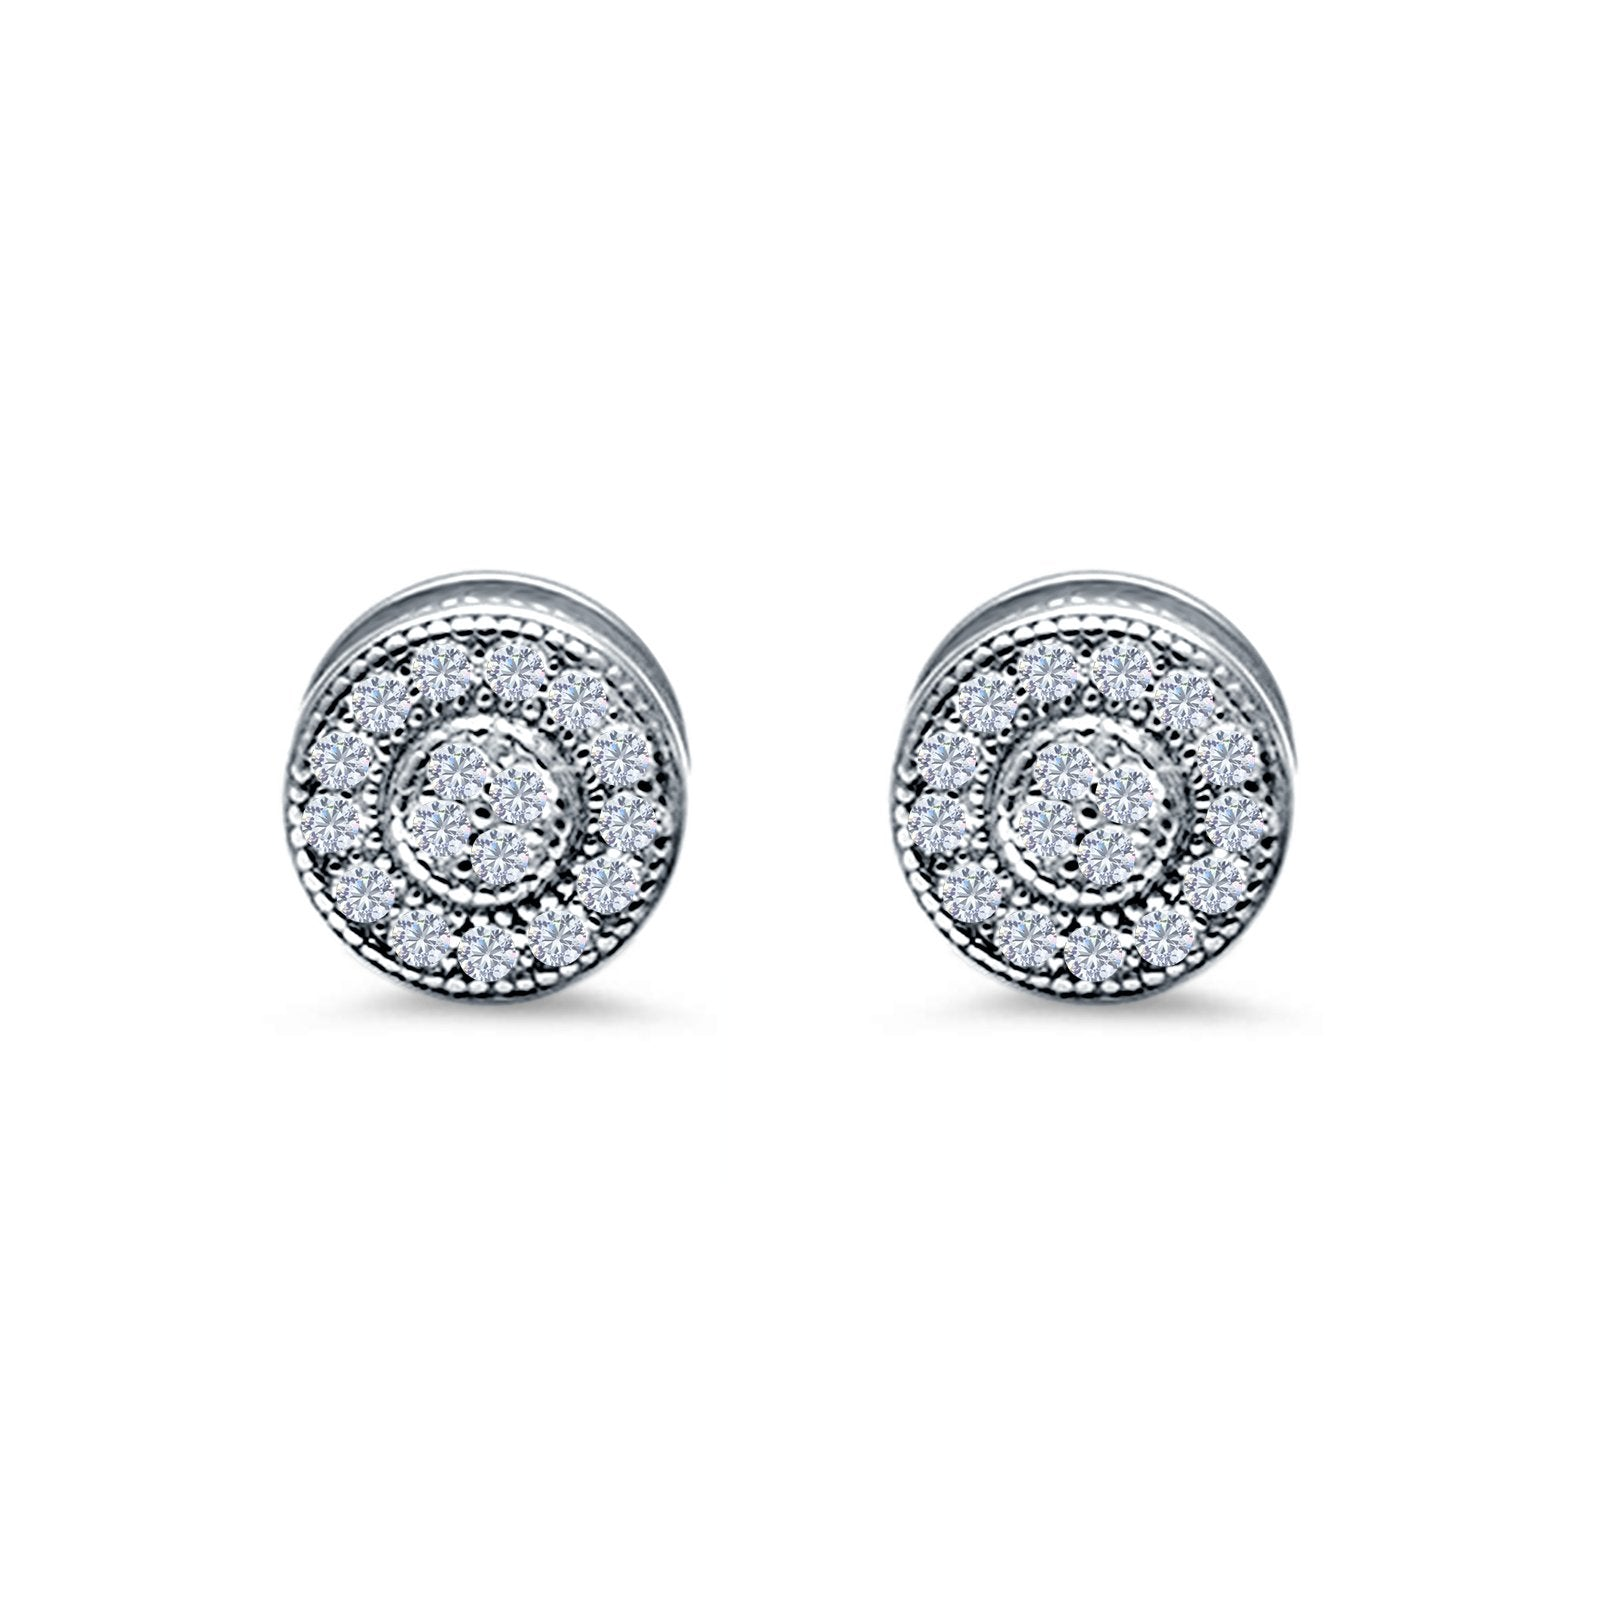 Round Design Simulated Cubic Zirconia Stud Earrings Screw Back 925 Sterling Silver 6mm